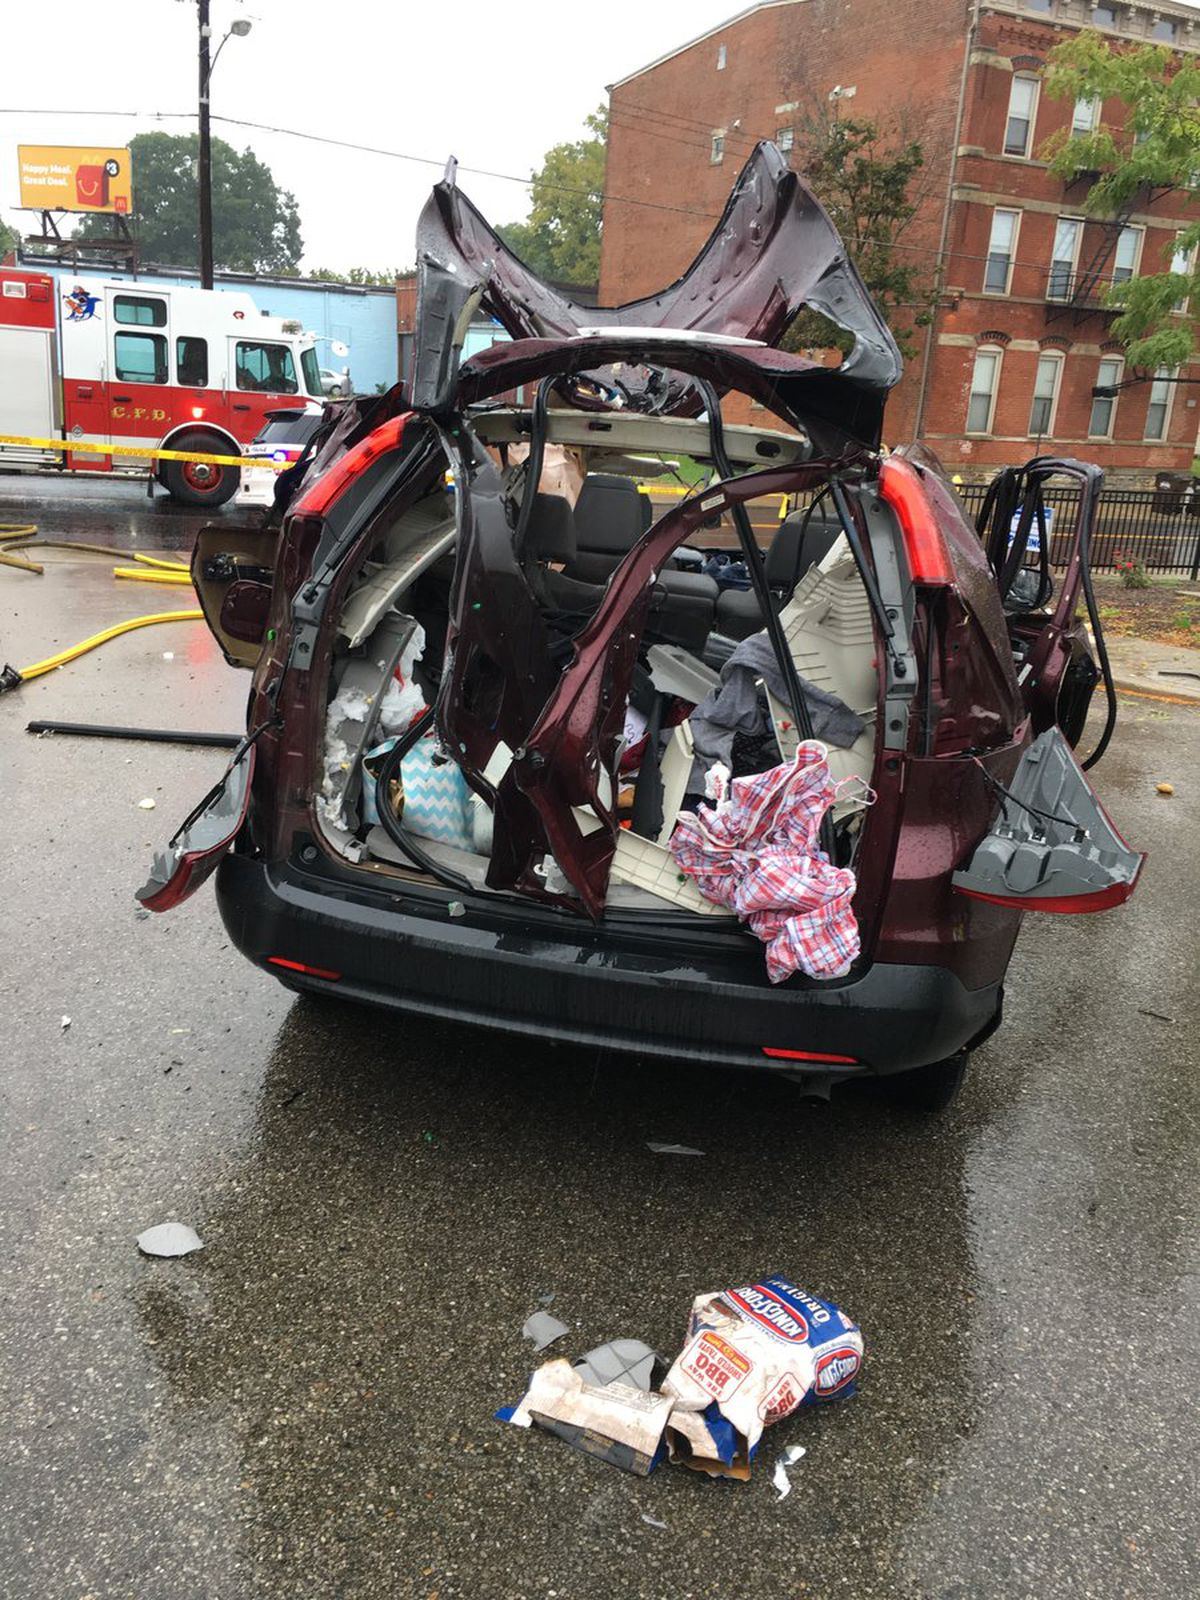 Woman Burned In Car Explosion: 'Took Me A Long Time To